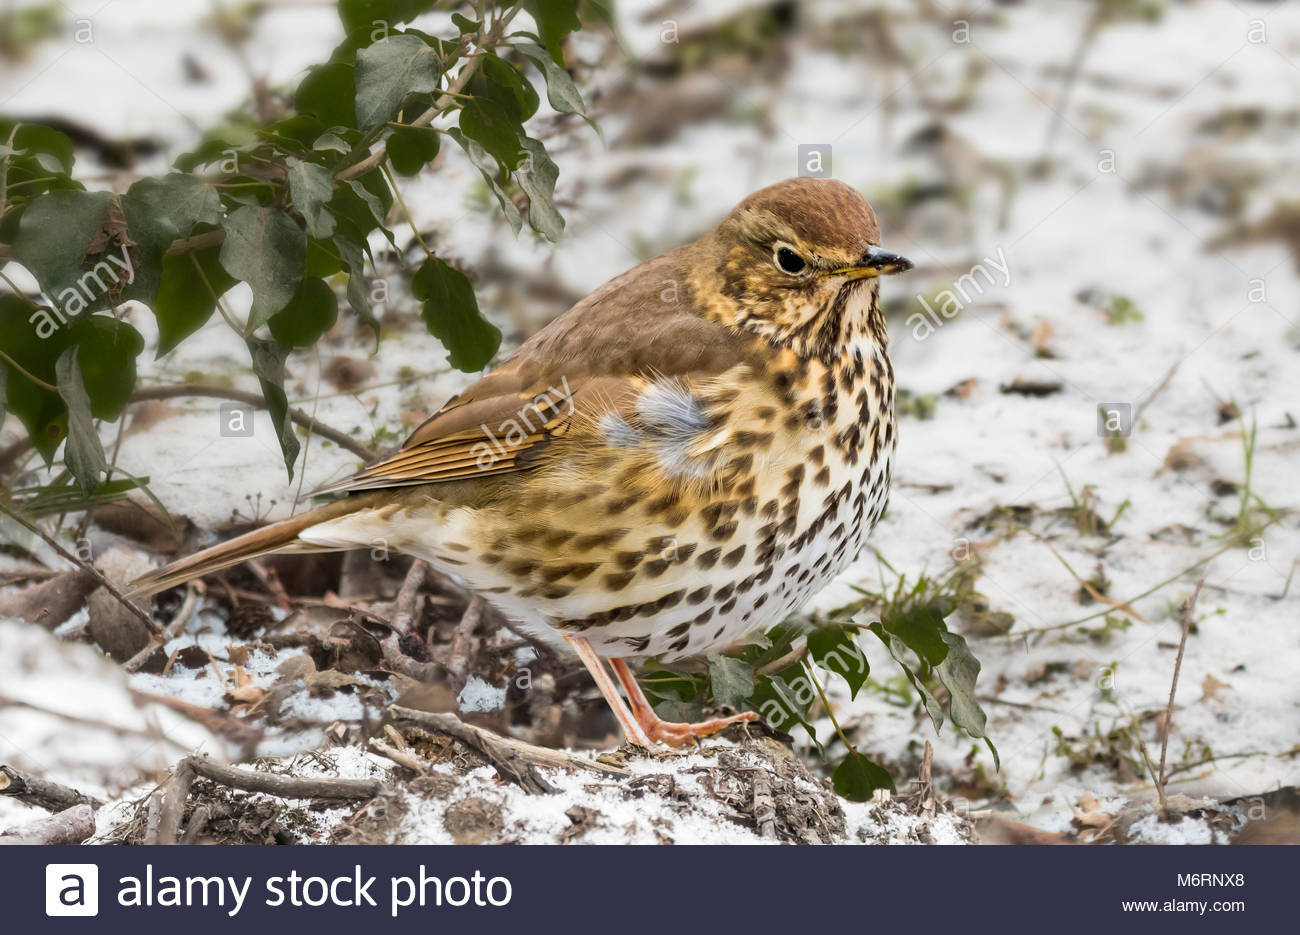 song-thrush-turdus-philomelos-standing-on-snow-covered-ground-on-a-M6RNX8.jpg